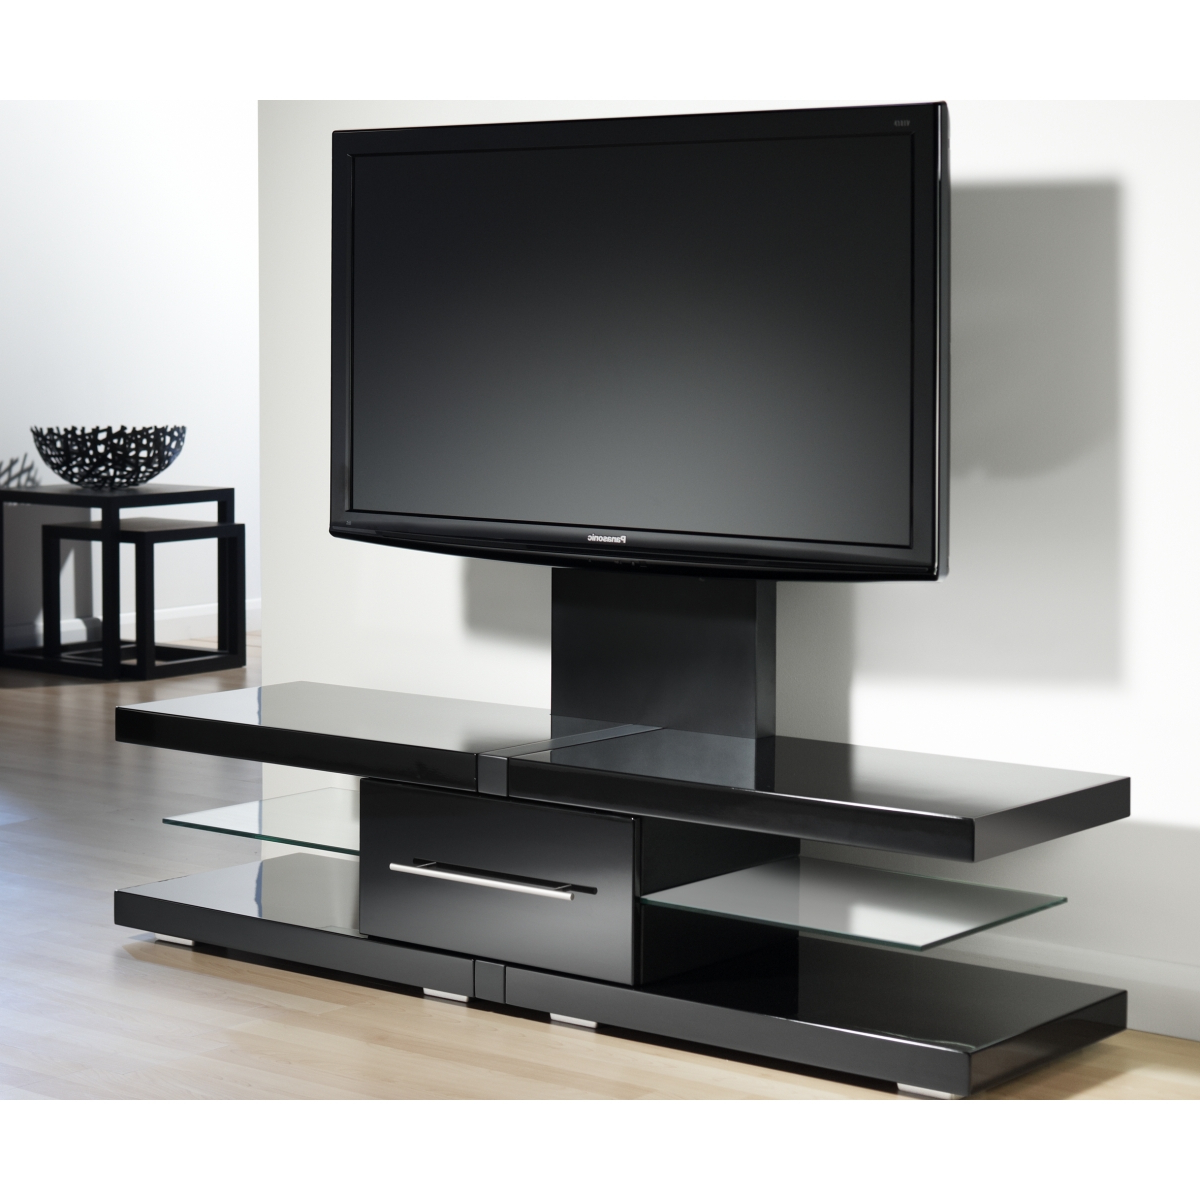 Long Black Tv Stands Intended For Well Known Different Types Of Tv Stand With Mount 60 Inch – Furnish Ideas (View 8 of 20)